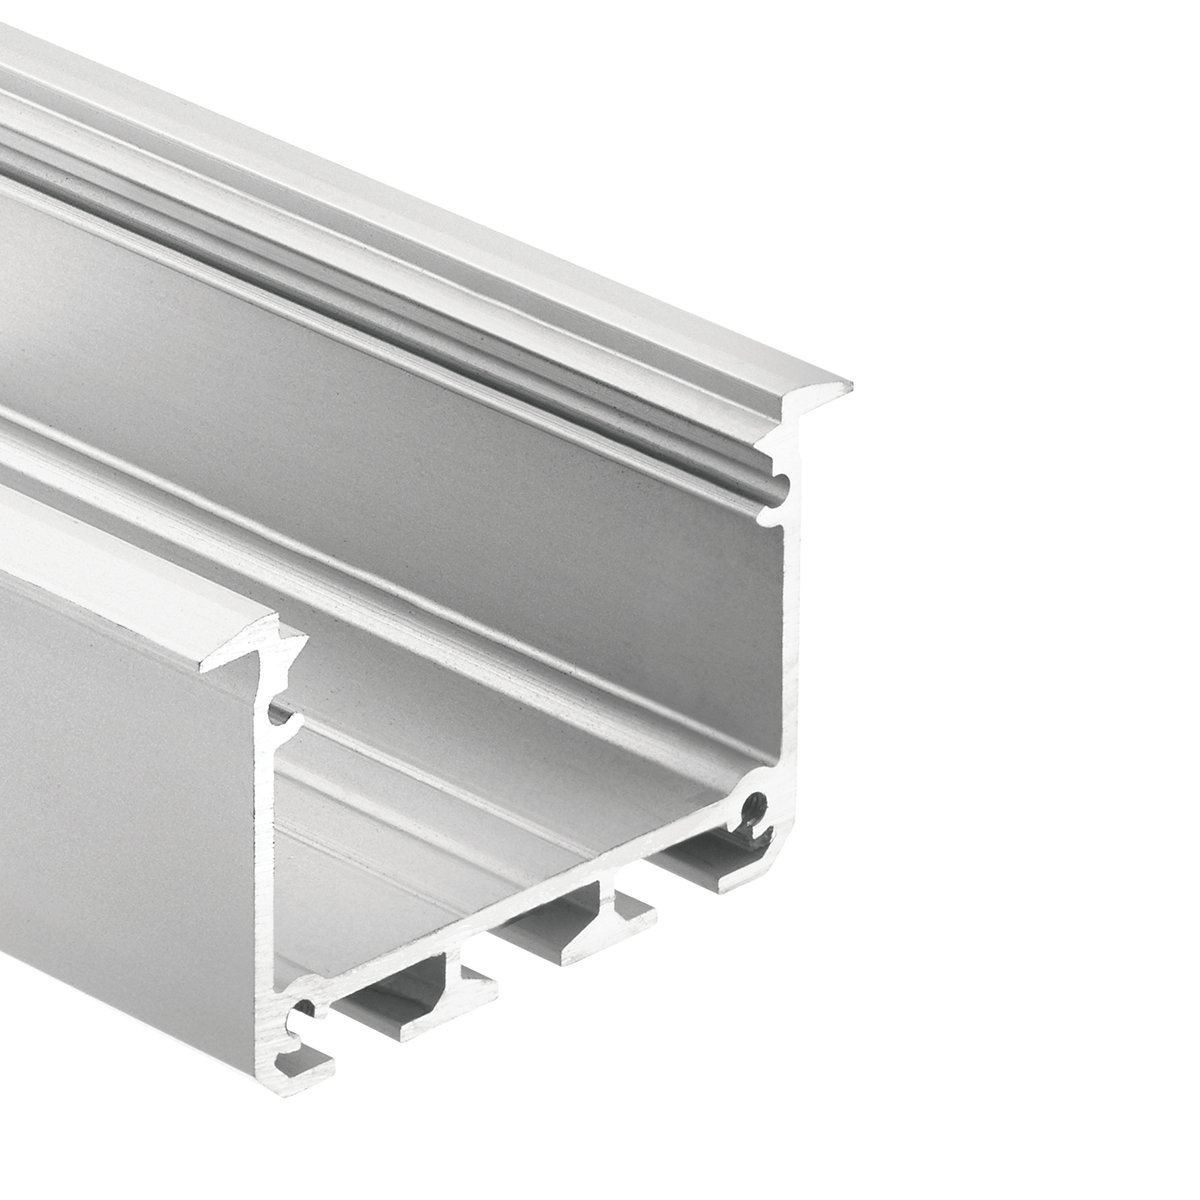 Tape Extrusion Channel